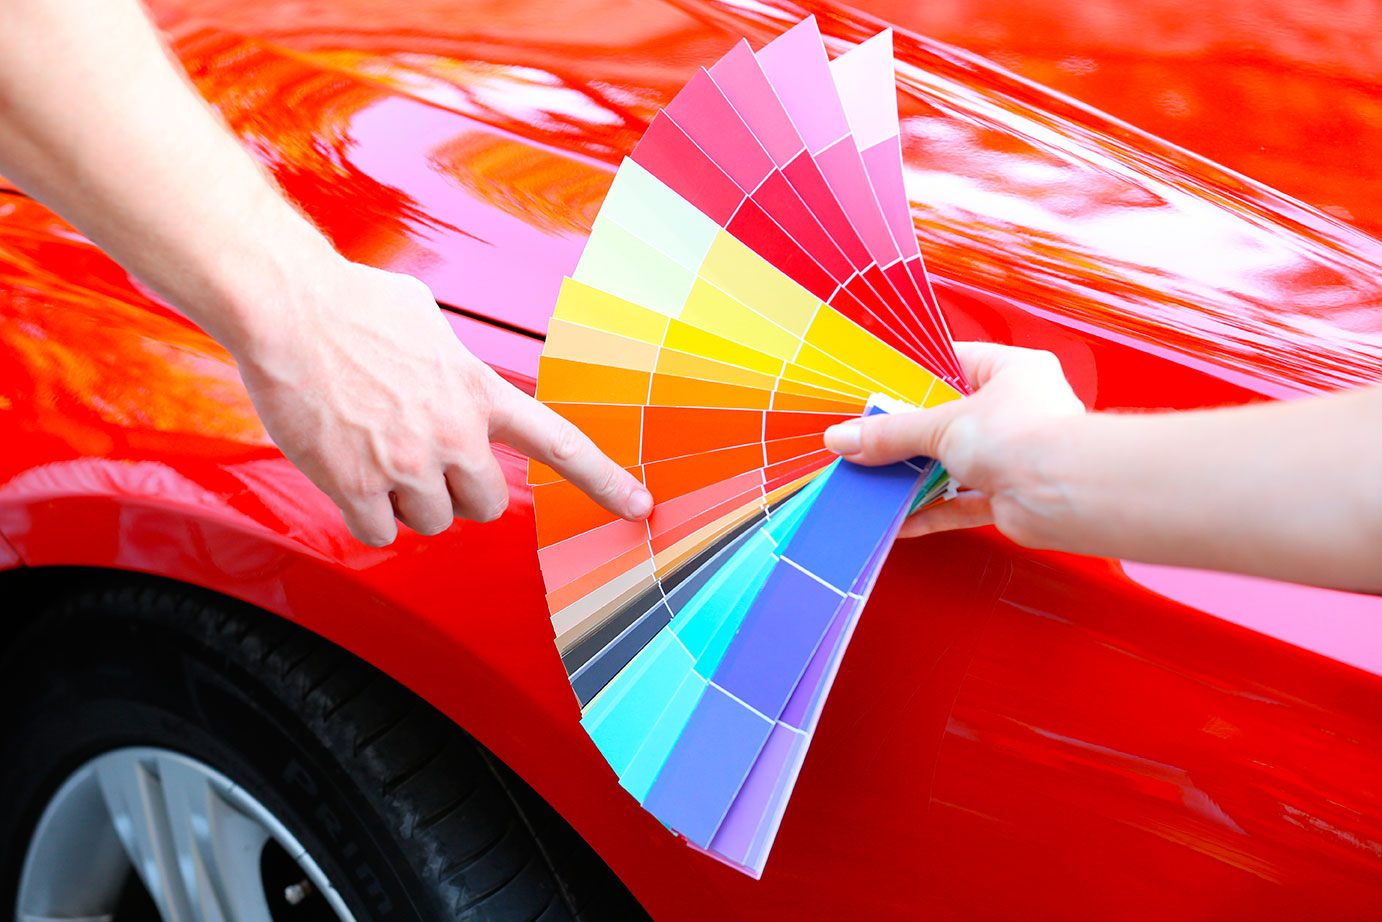 talleresIRM, taller mecánico coches castelldefels, chapa y pintura coches